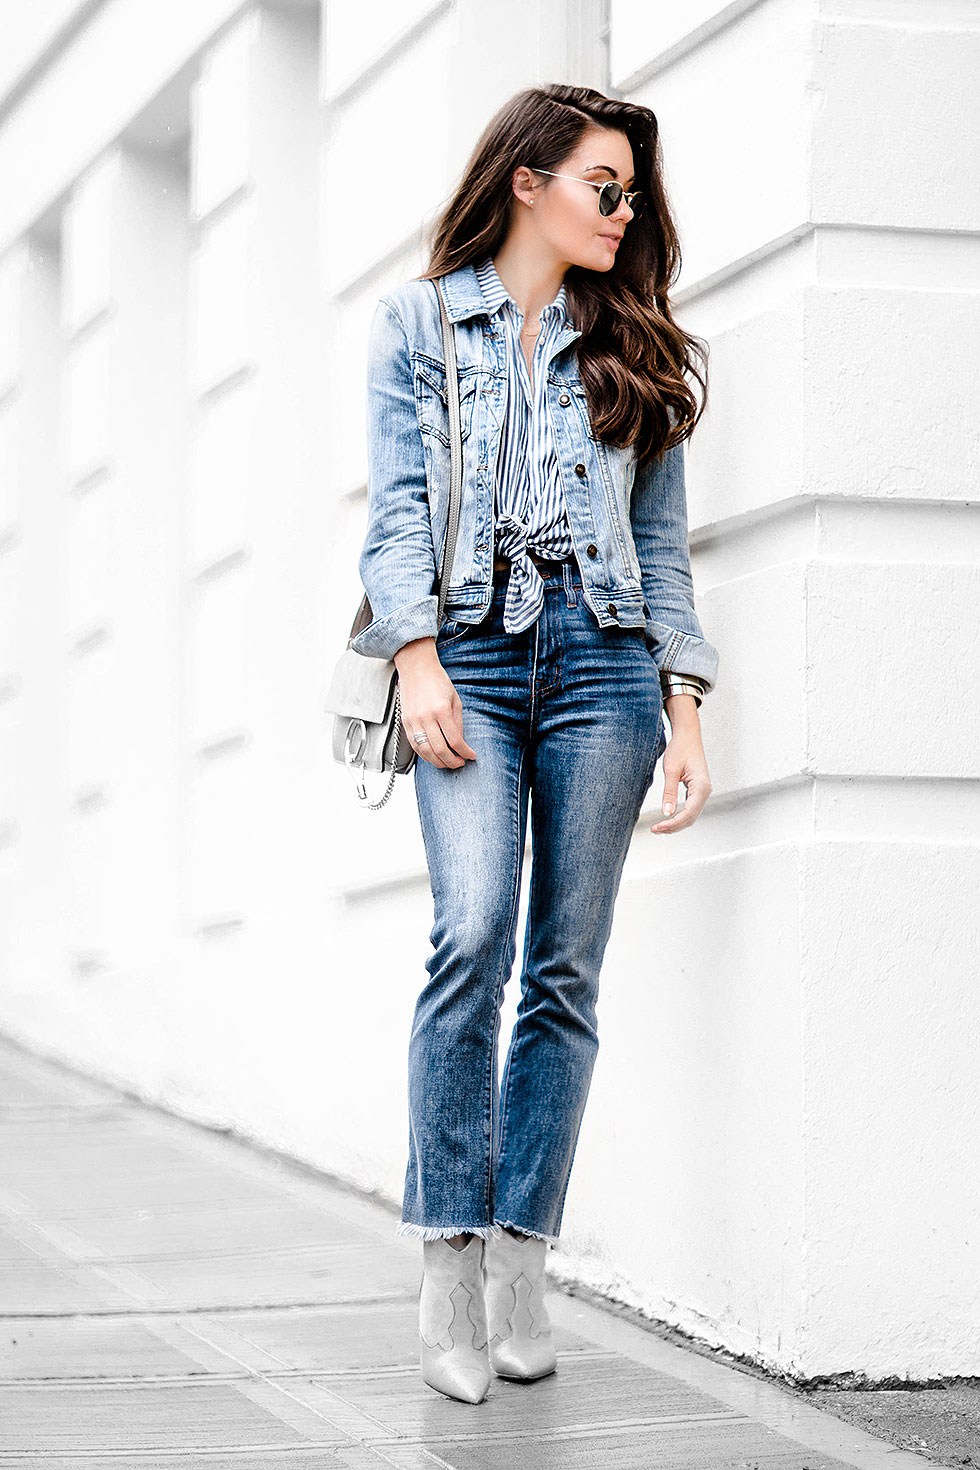 If you're looking for a classic retro style, wear the double denim trend with a waist tie striped shirt and cowboy boots like Sarah Butler! This look is effortlessly chic and infinitely trendy! Jeans/Shirt: Madewell, Jacket: Forever 21, Bag: Chloe.